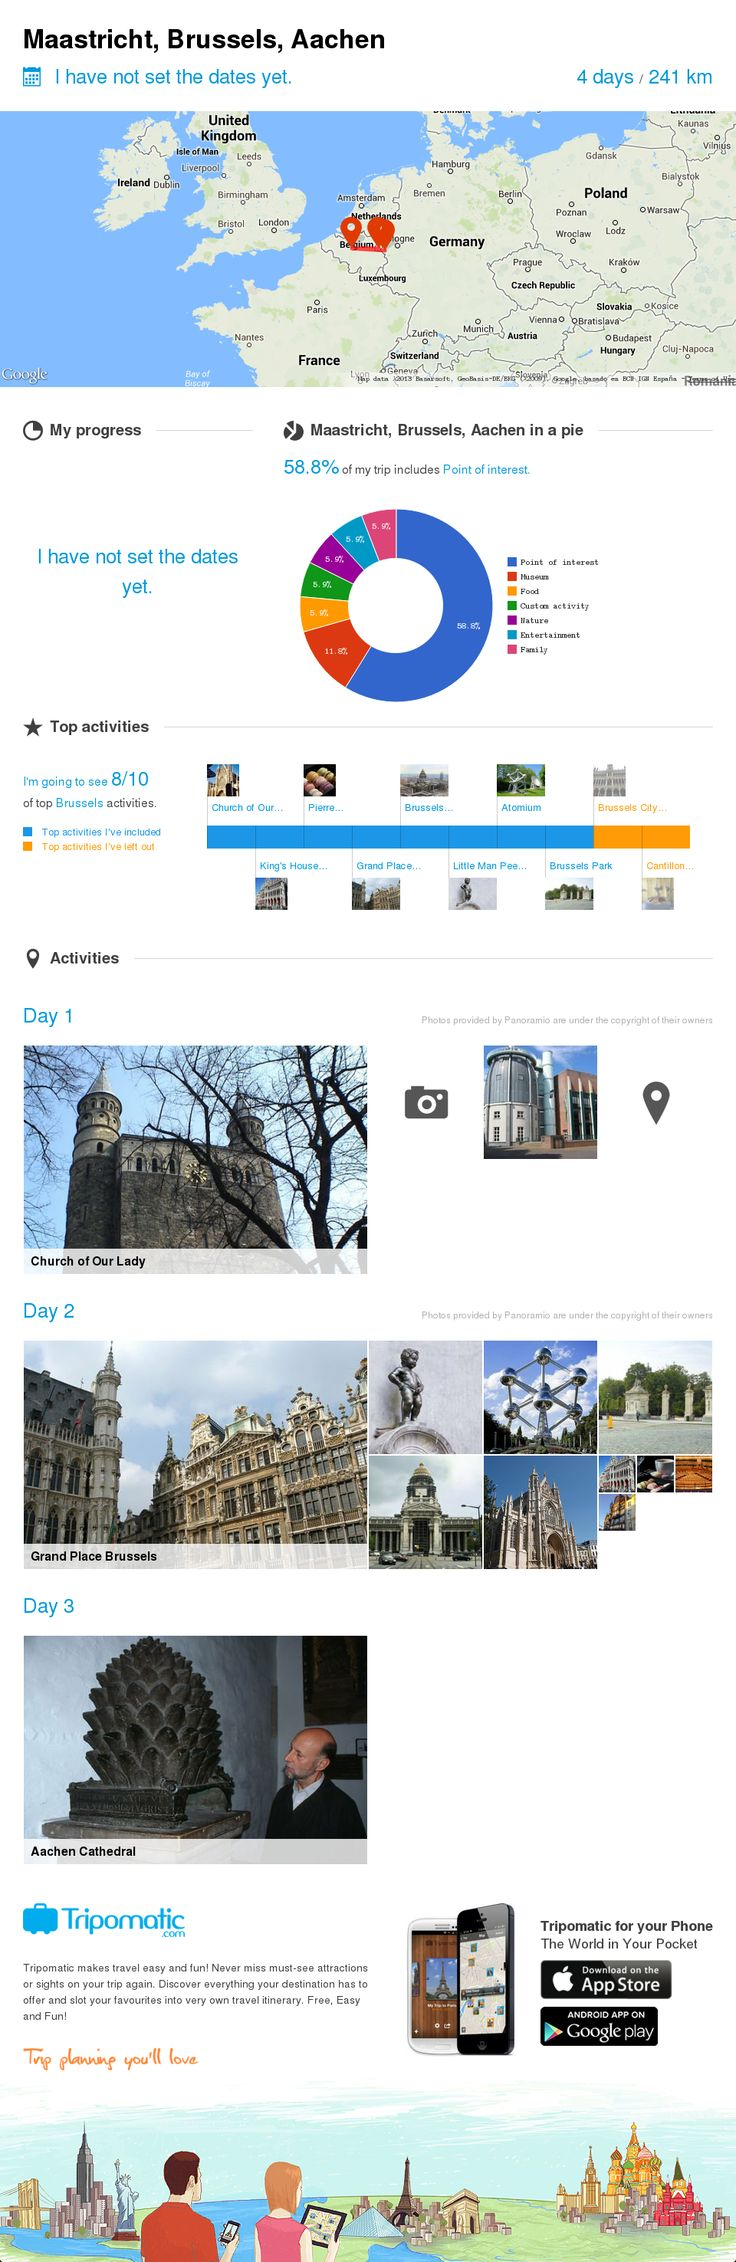 Check out my awesome trip to Aachen, Brussels and Stolberg!